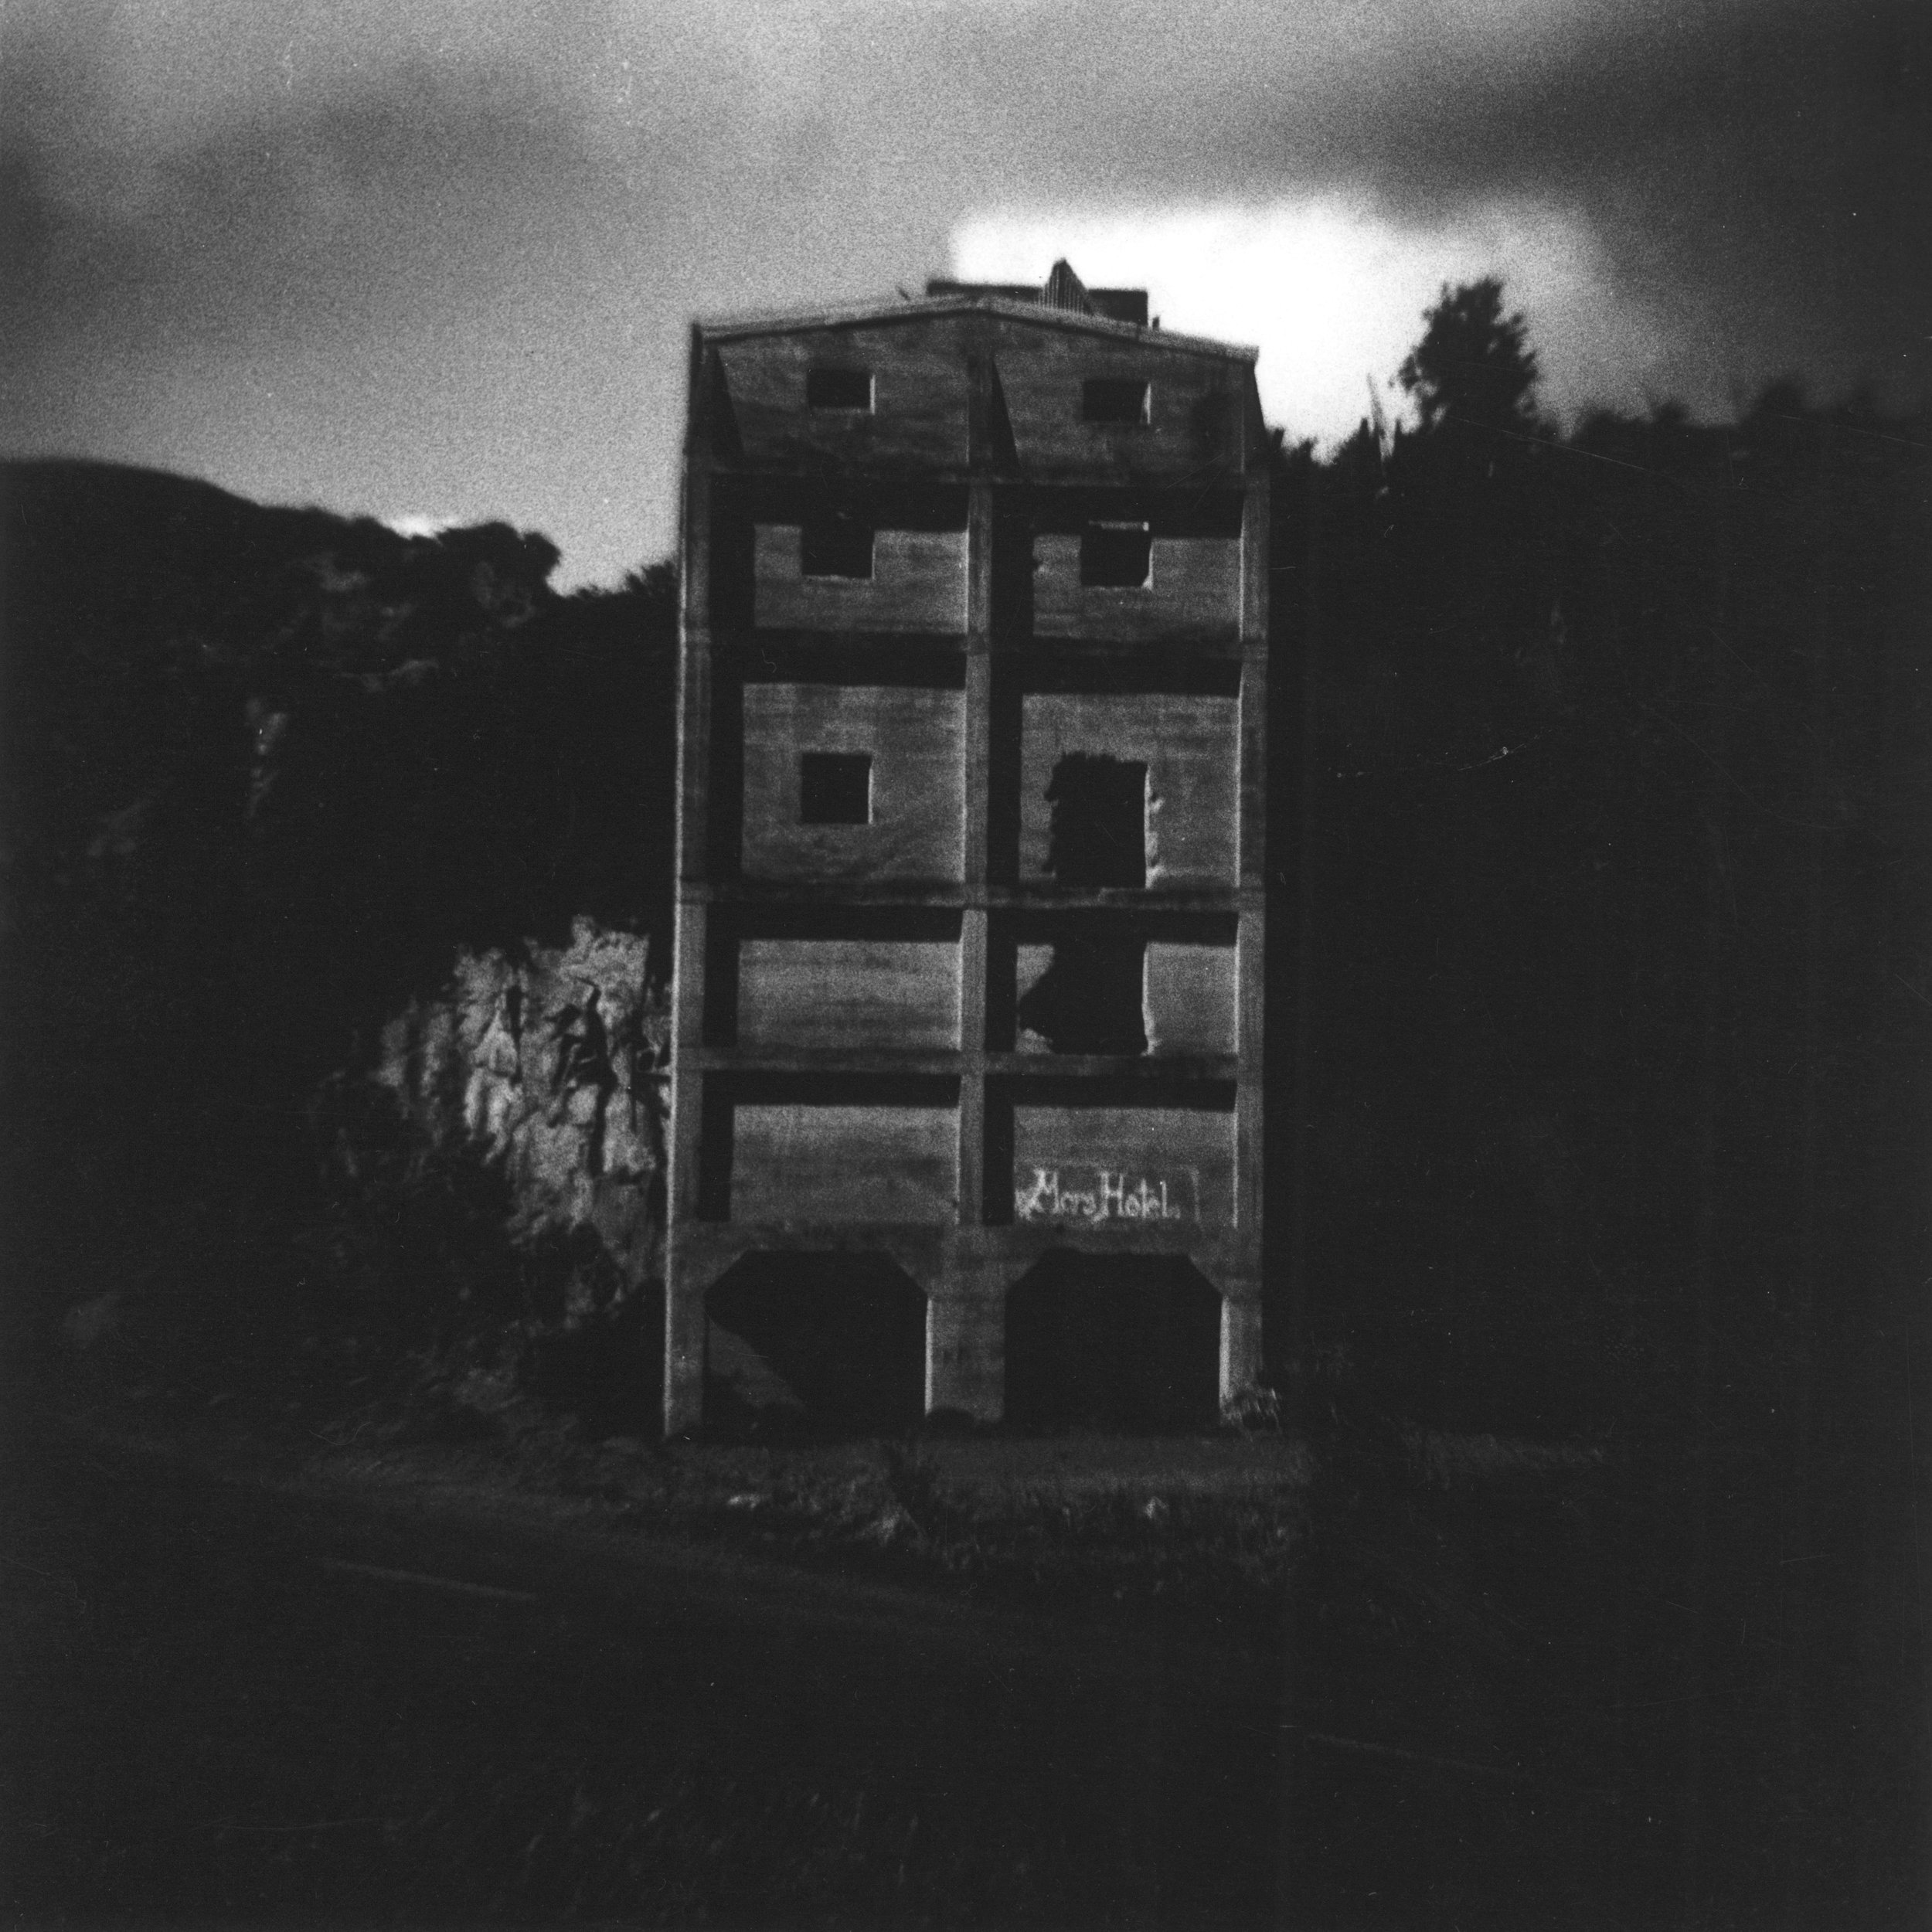 Peter Peryer, Hunua, 1975. Gelatin silver print. Image courtesy of the artist.